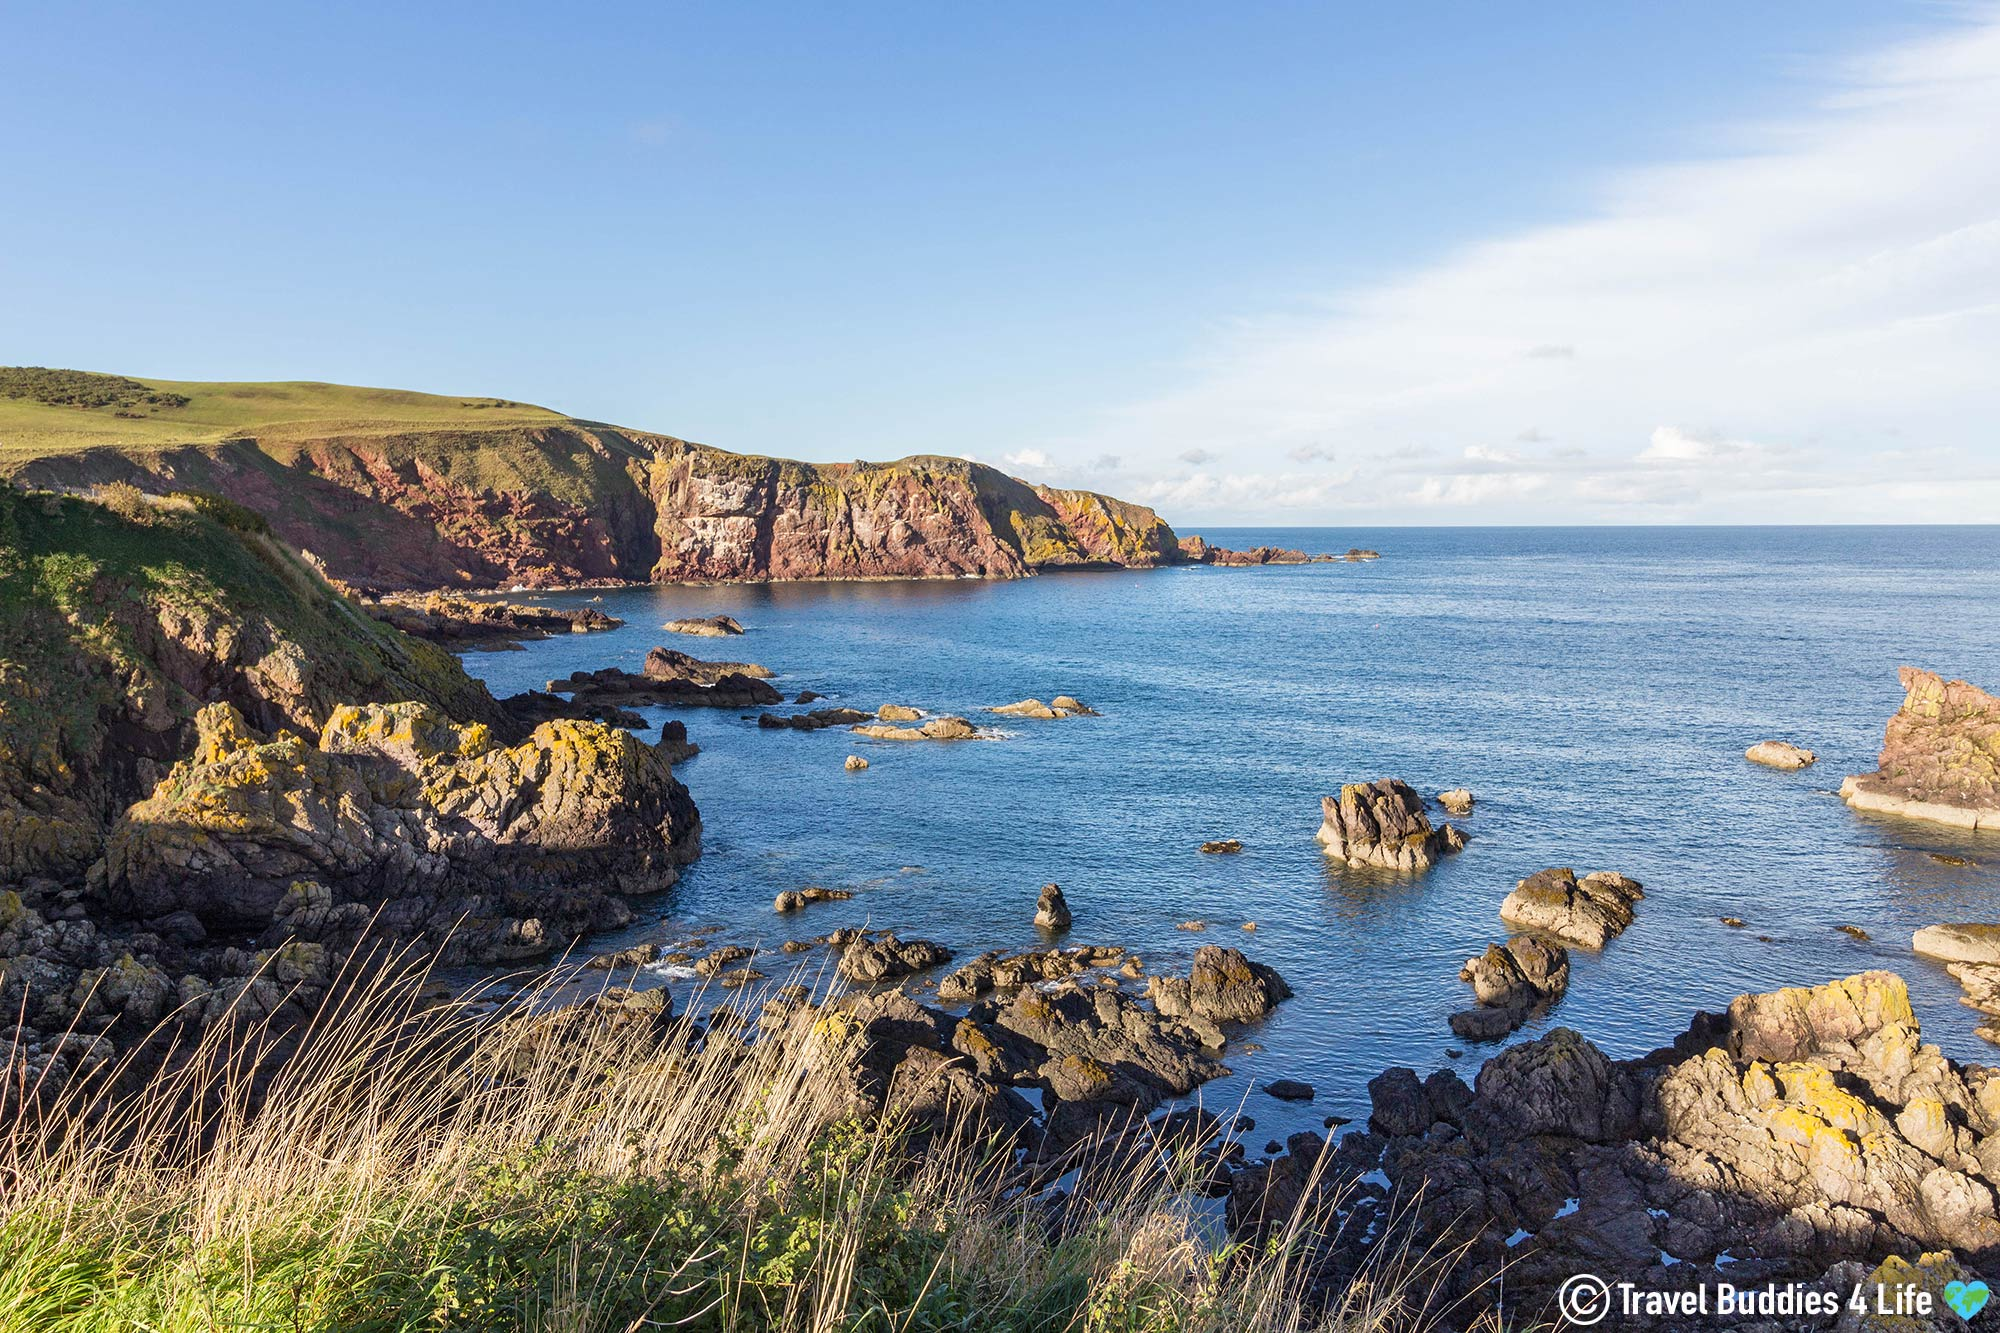 The Cliff And Rocky Shoreline Of St Abbs, Eastern Scotland